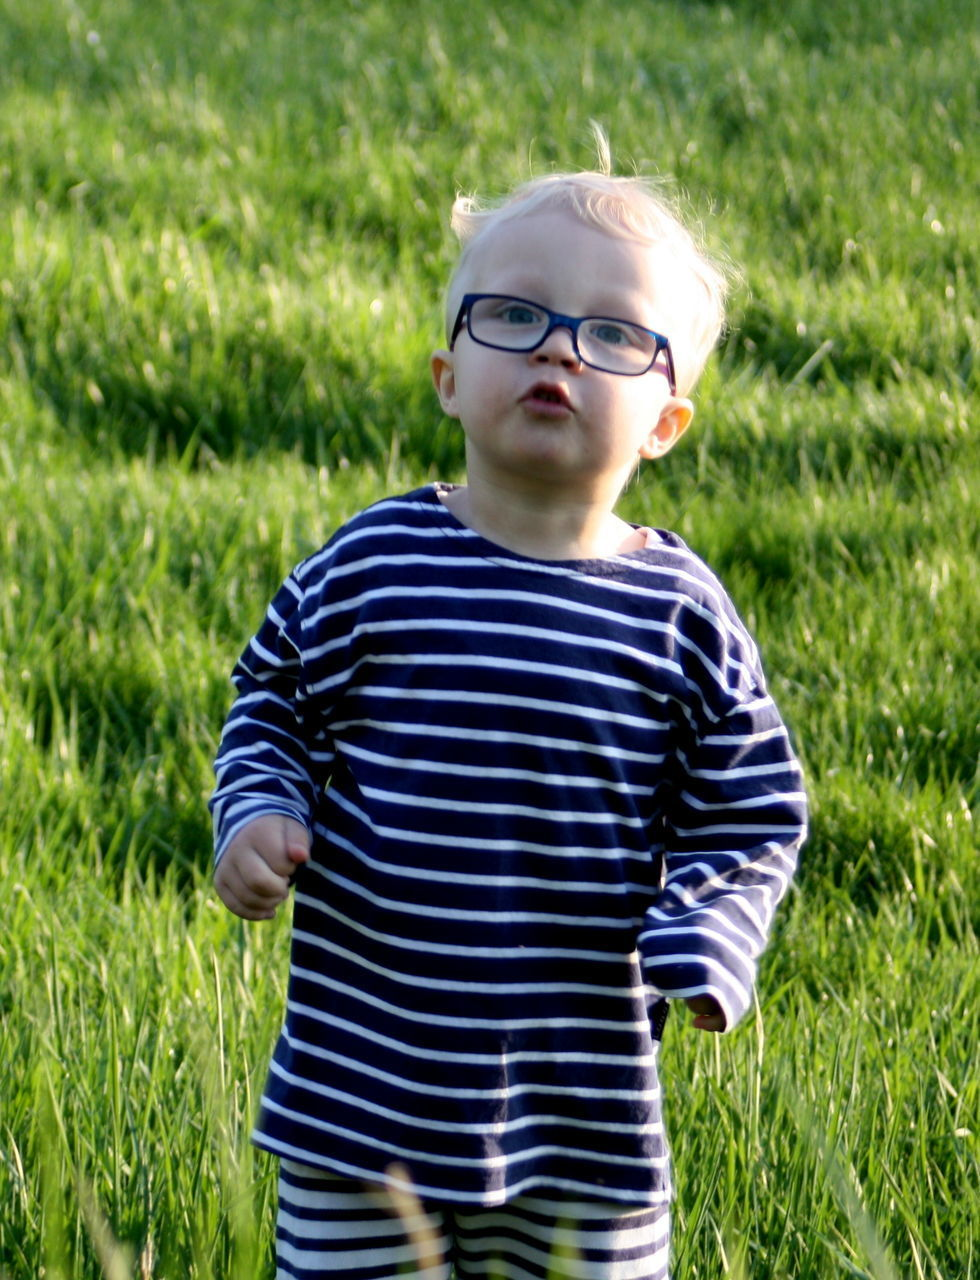 striped, grass, eyeglasses, childhood, child, boys, children only, one boy only, waist up, one person, looking at camera, portrait, males, blond hair, standing, outdoors, day, people